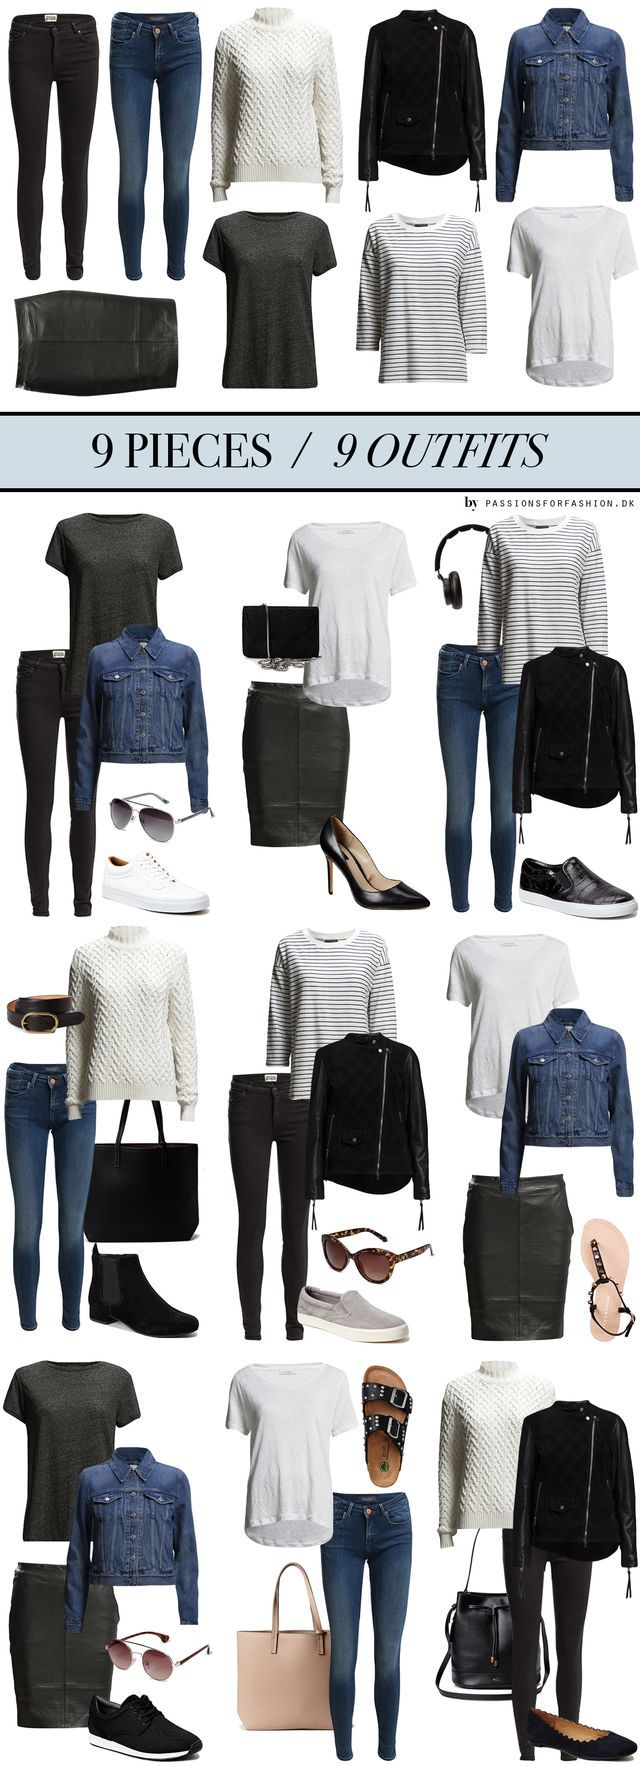 Contains affiliate links: black jeans/Twist & Tango HERE, blue jeans/Maison Scotch HERE, pullover/Gestuz HERE, leather jacket/J.